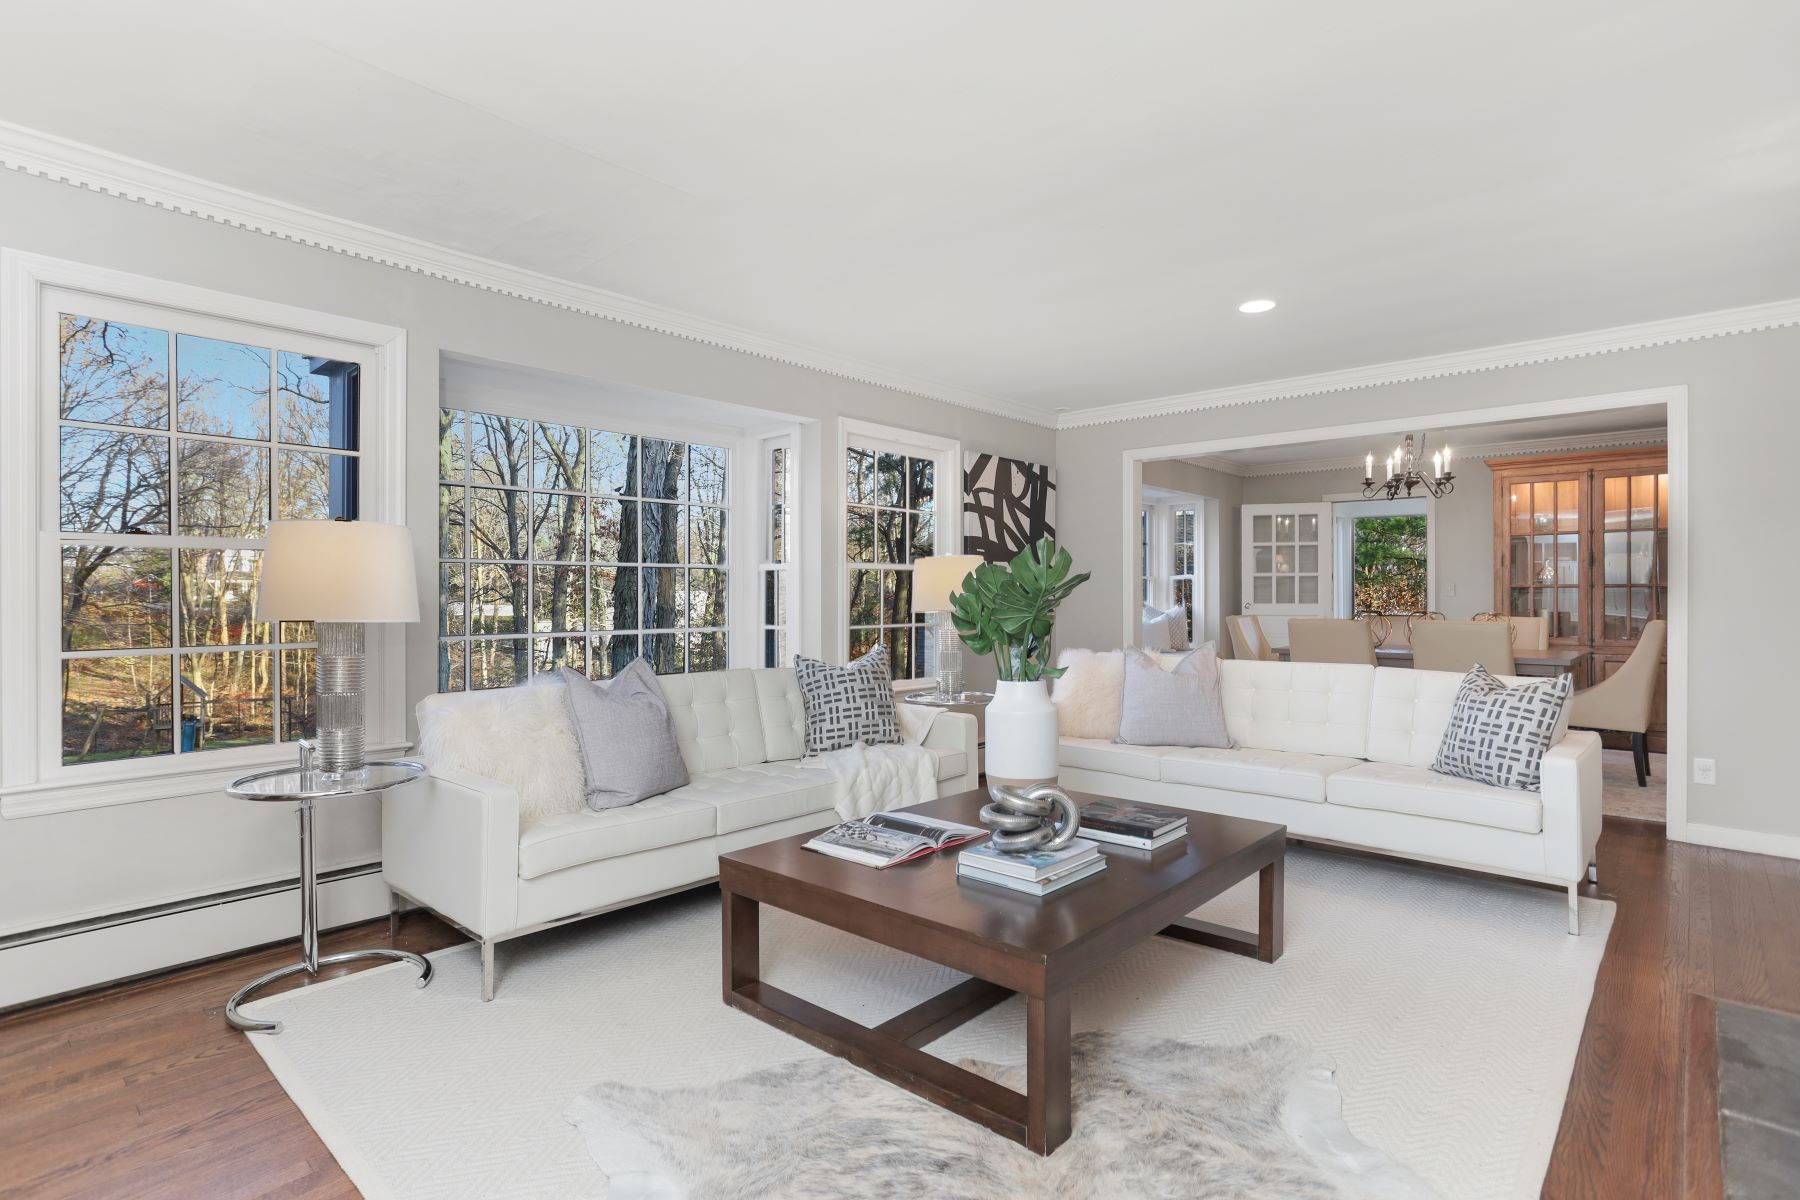 Single Family Homes for Active at 29 Granaston Lane Darien, Connecticut 06820 United States